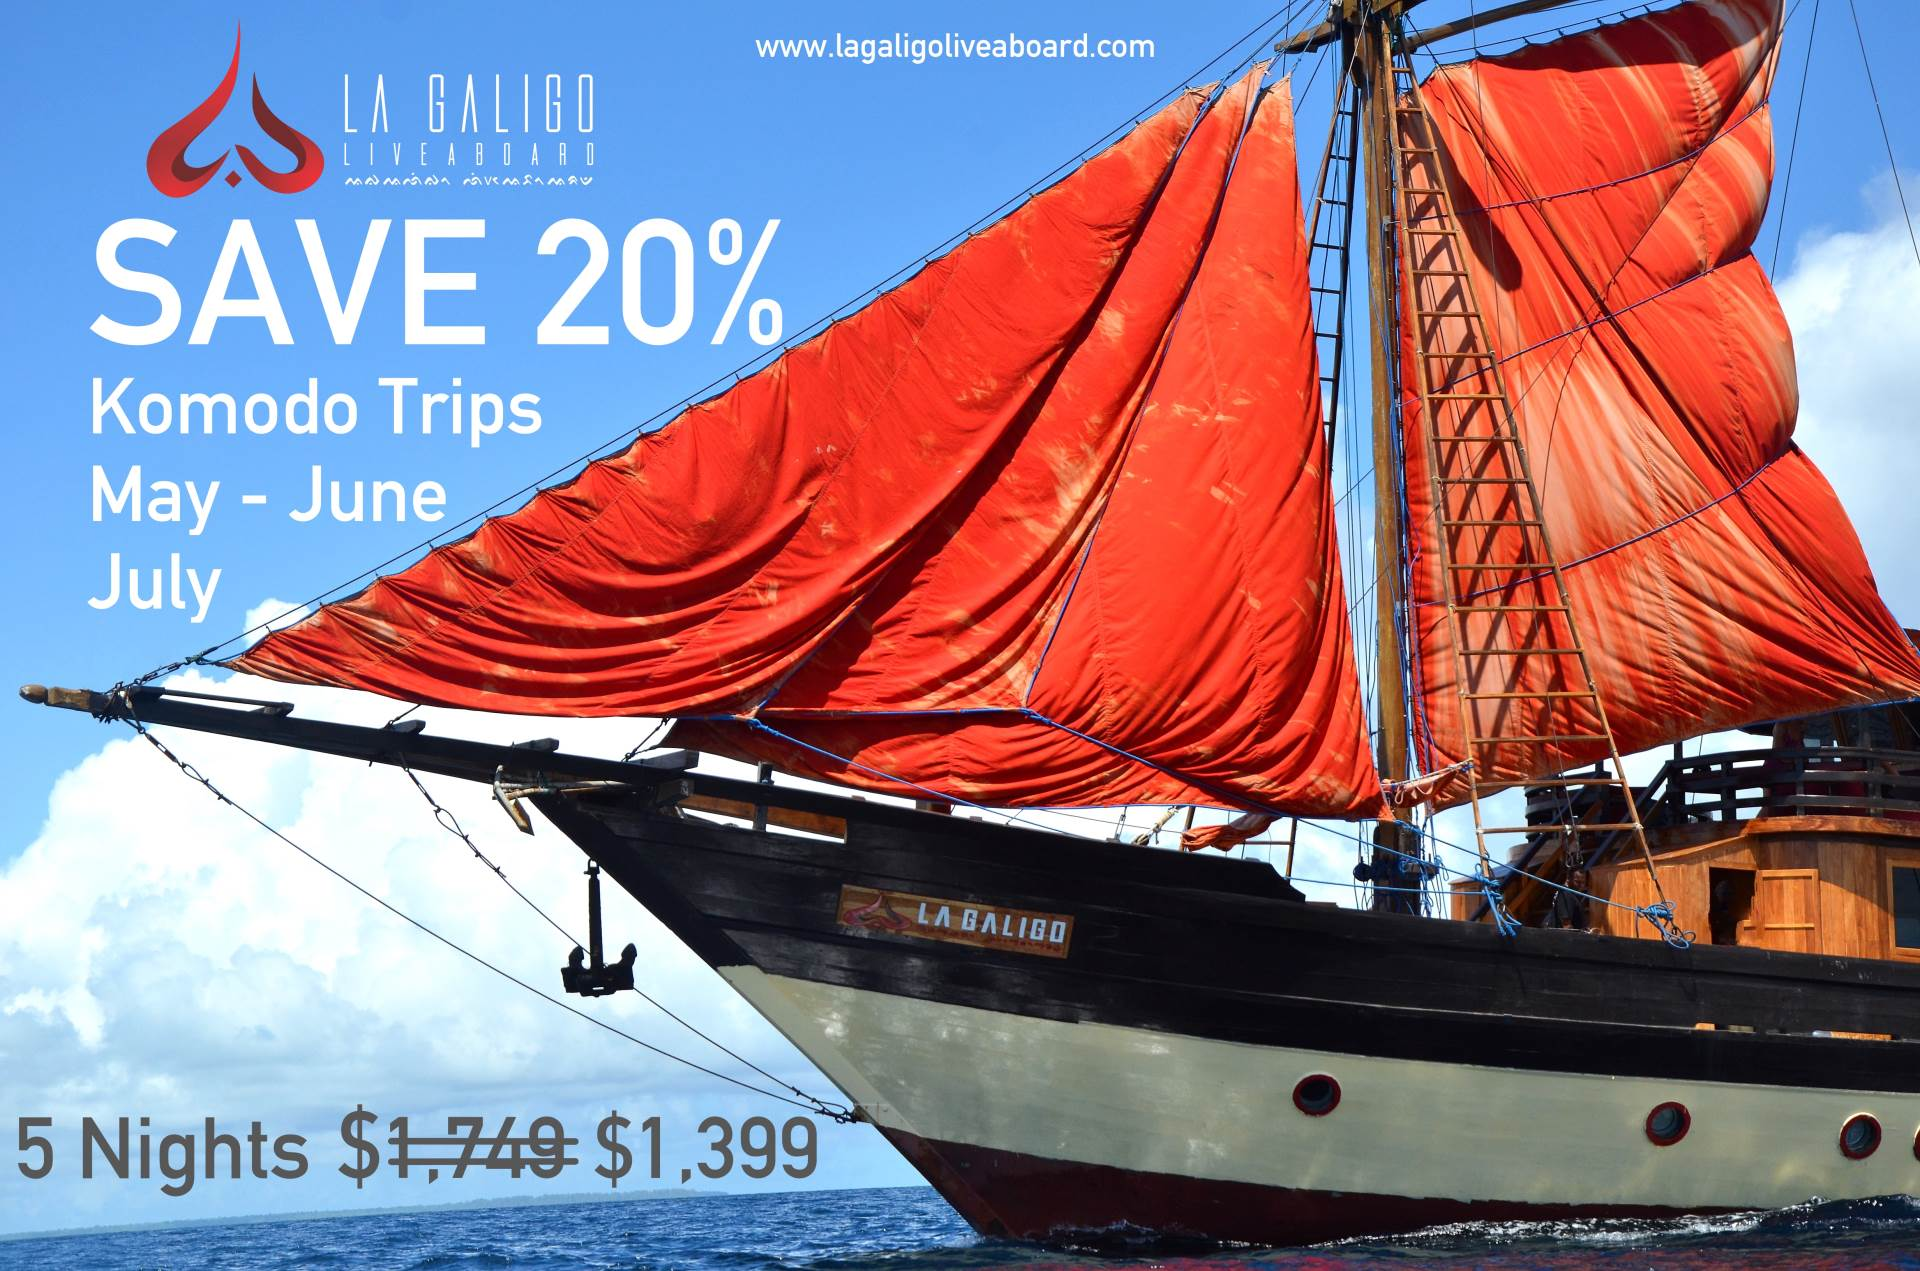 Komodo season has arrived! La Galigo is offering 20% off May - June - July liveaboard trips to celebrate.  Act quickly! This deal will sell out soon.   www.lagaligoliveaboard.com